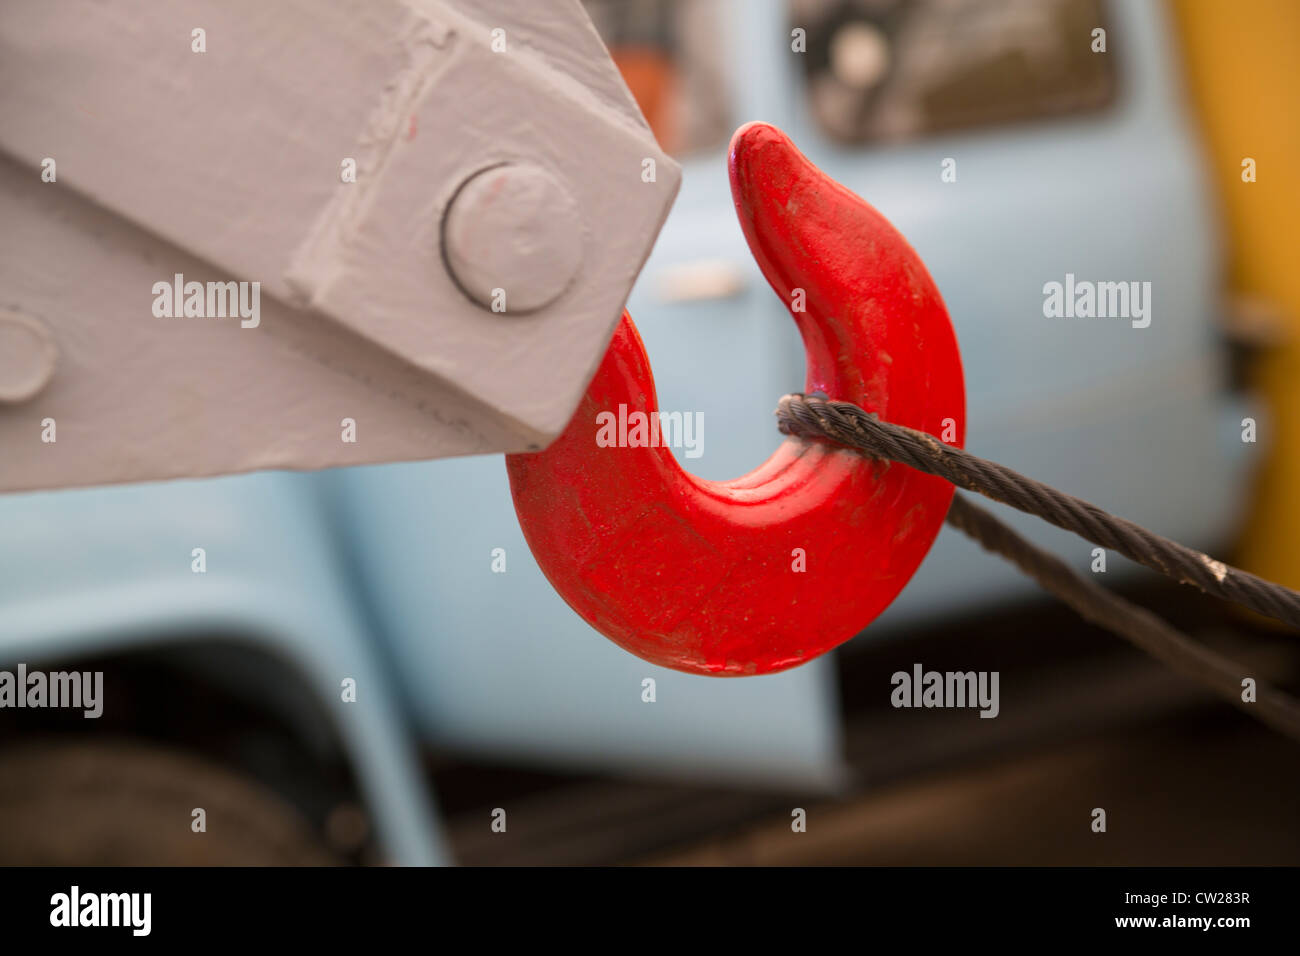 Red hook for removing obstacles is pulls cable - Stock Image